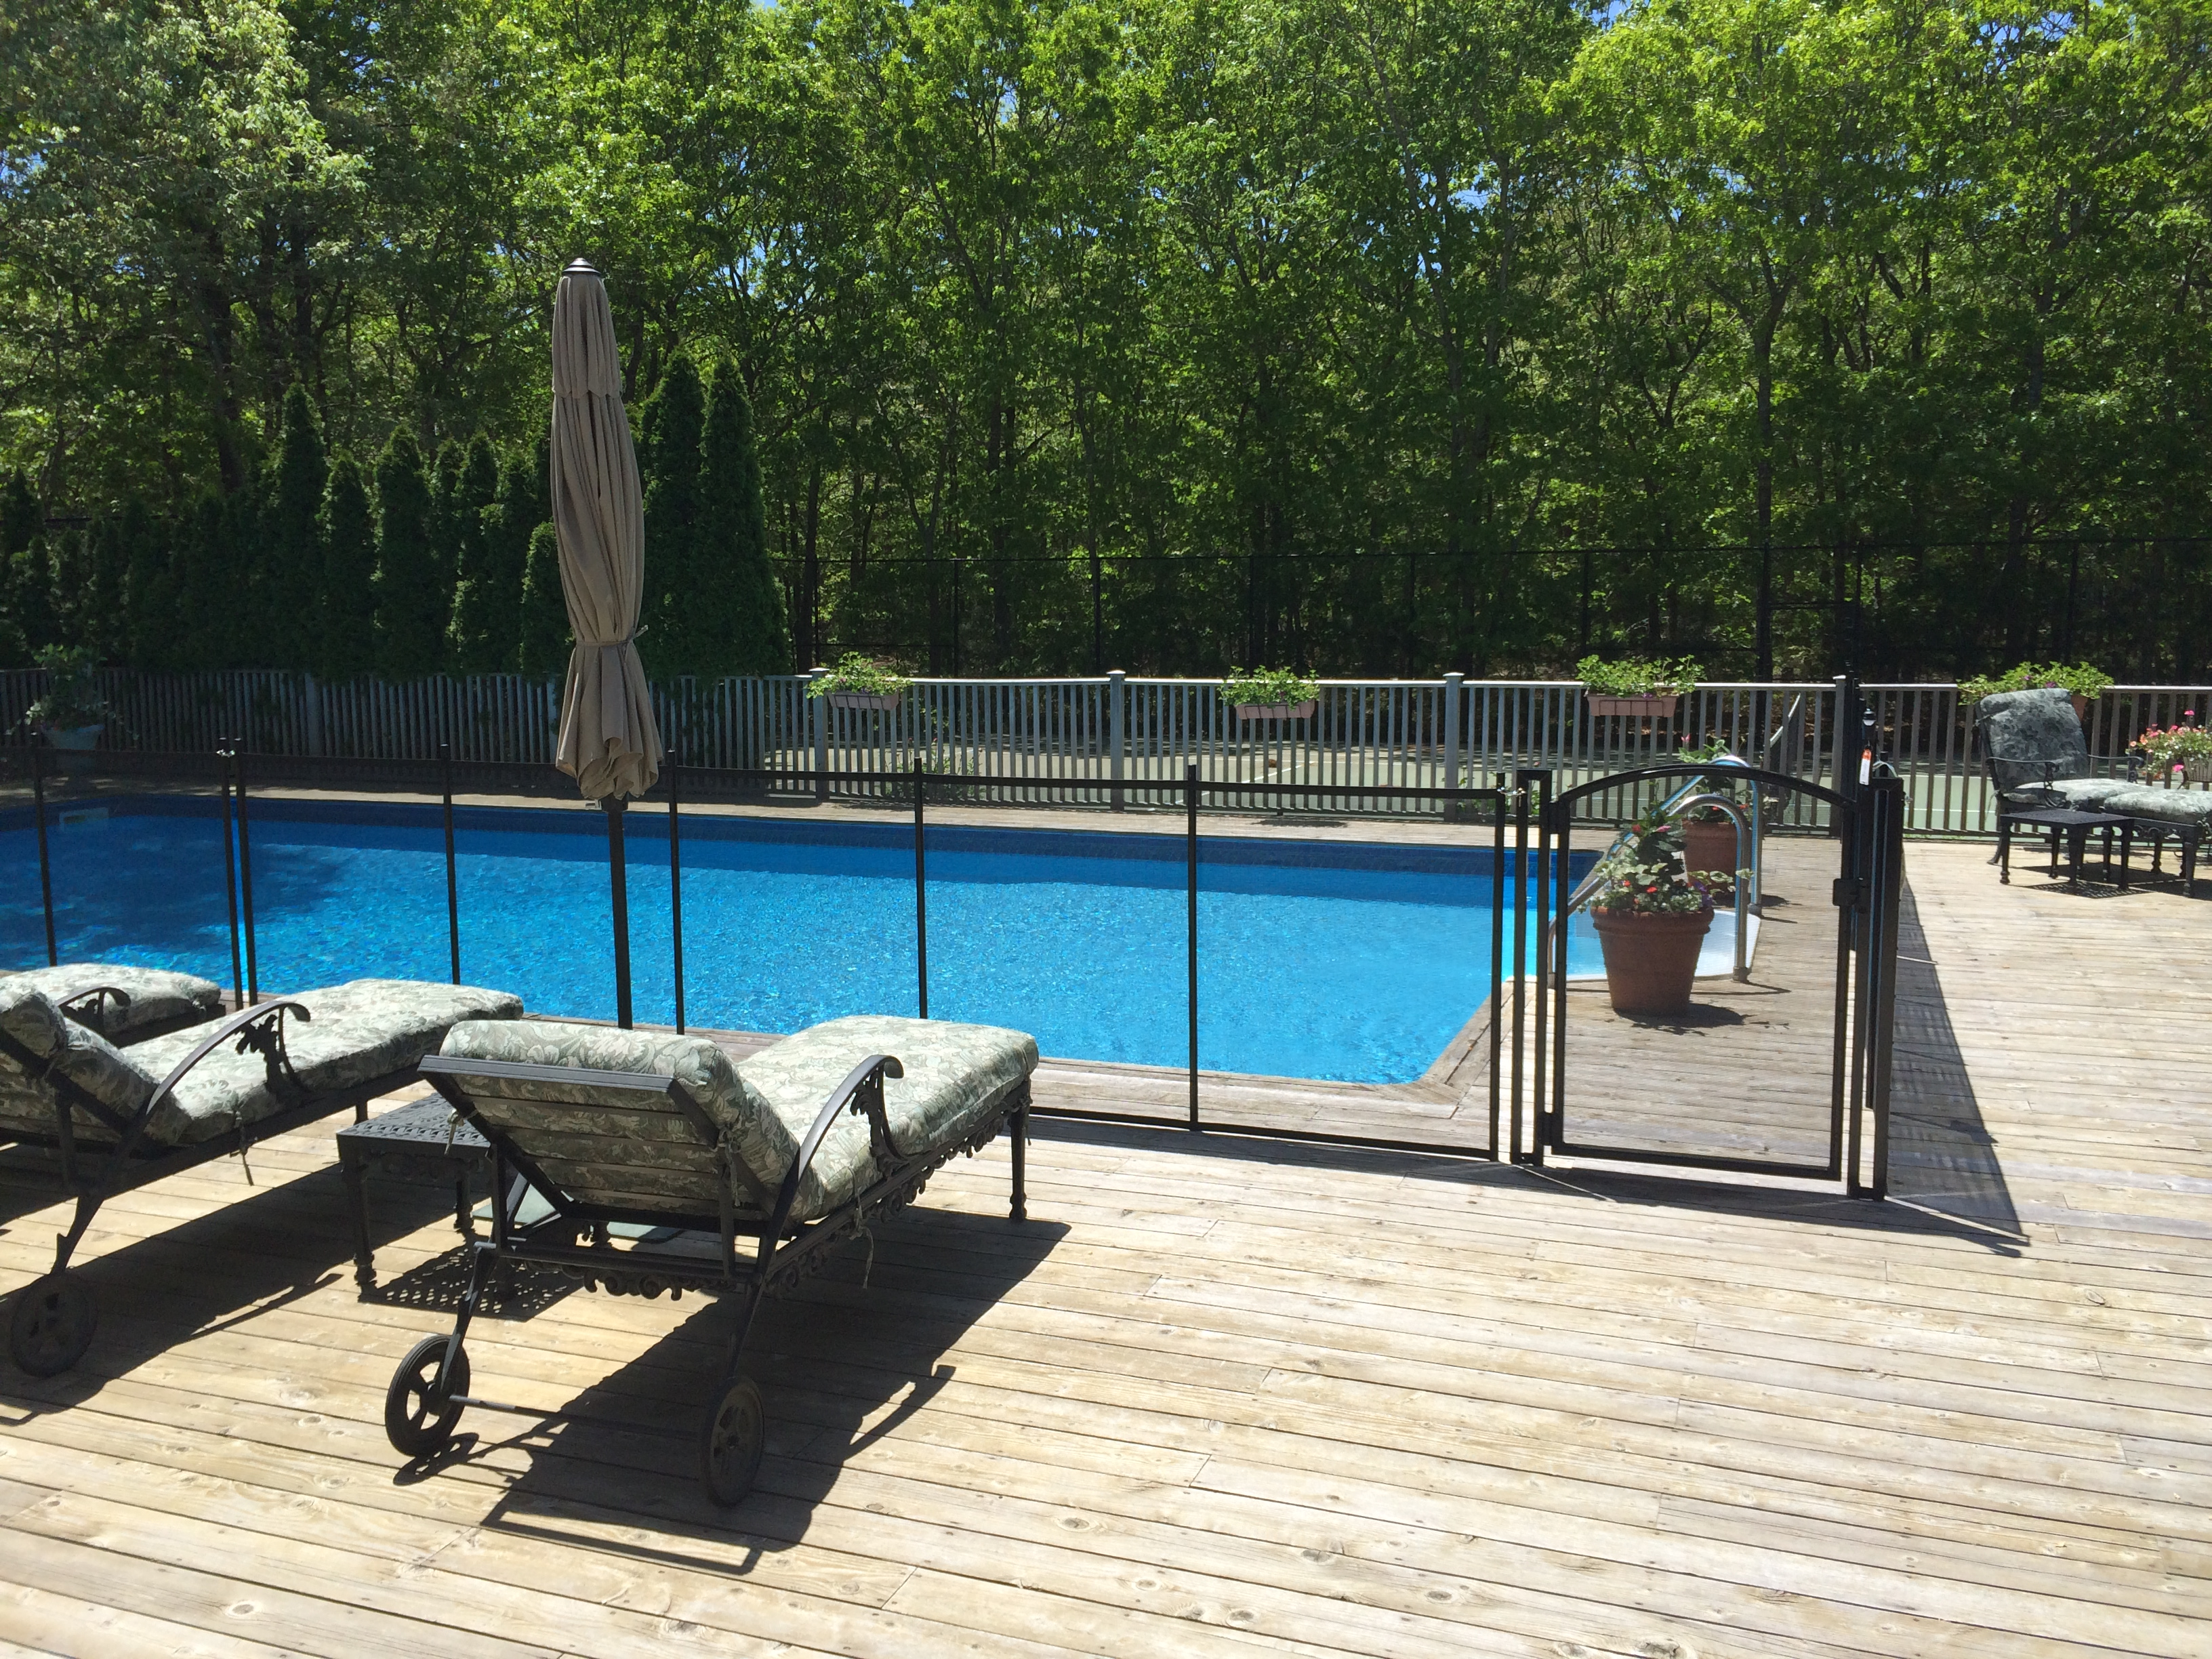 4 Pool Fence Upgrades To Consider For Spring